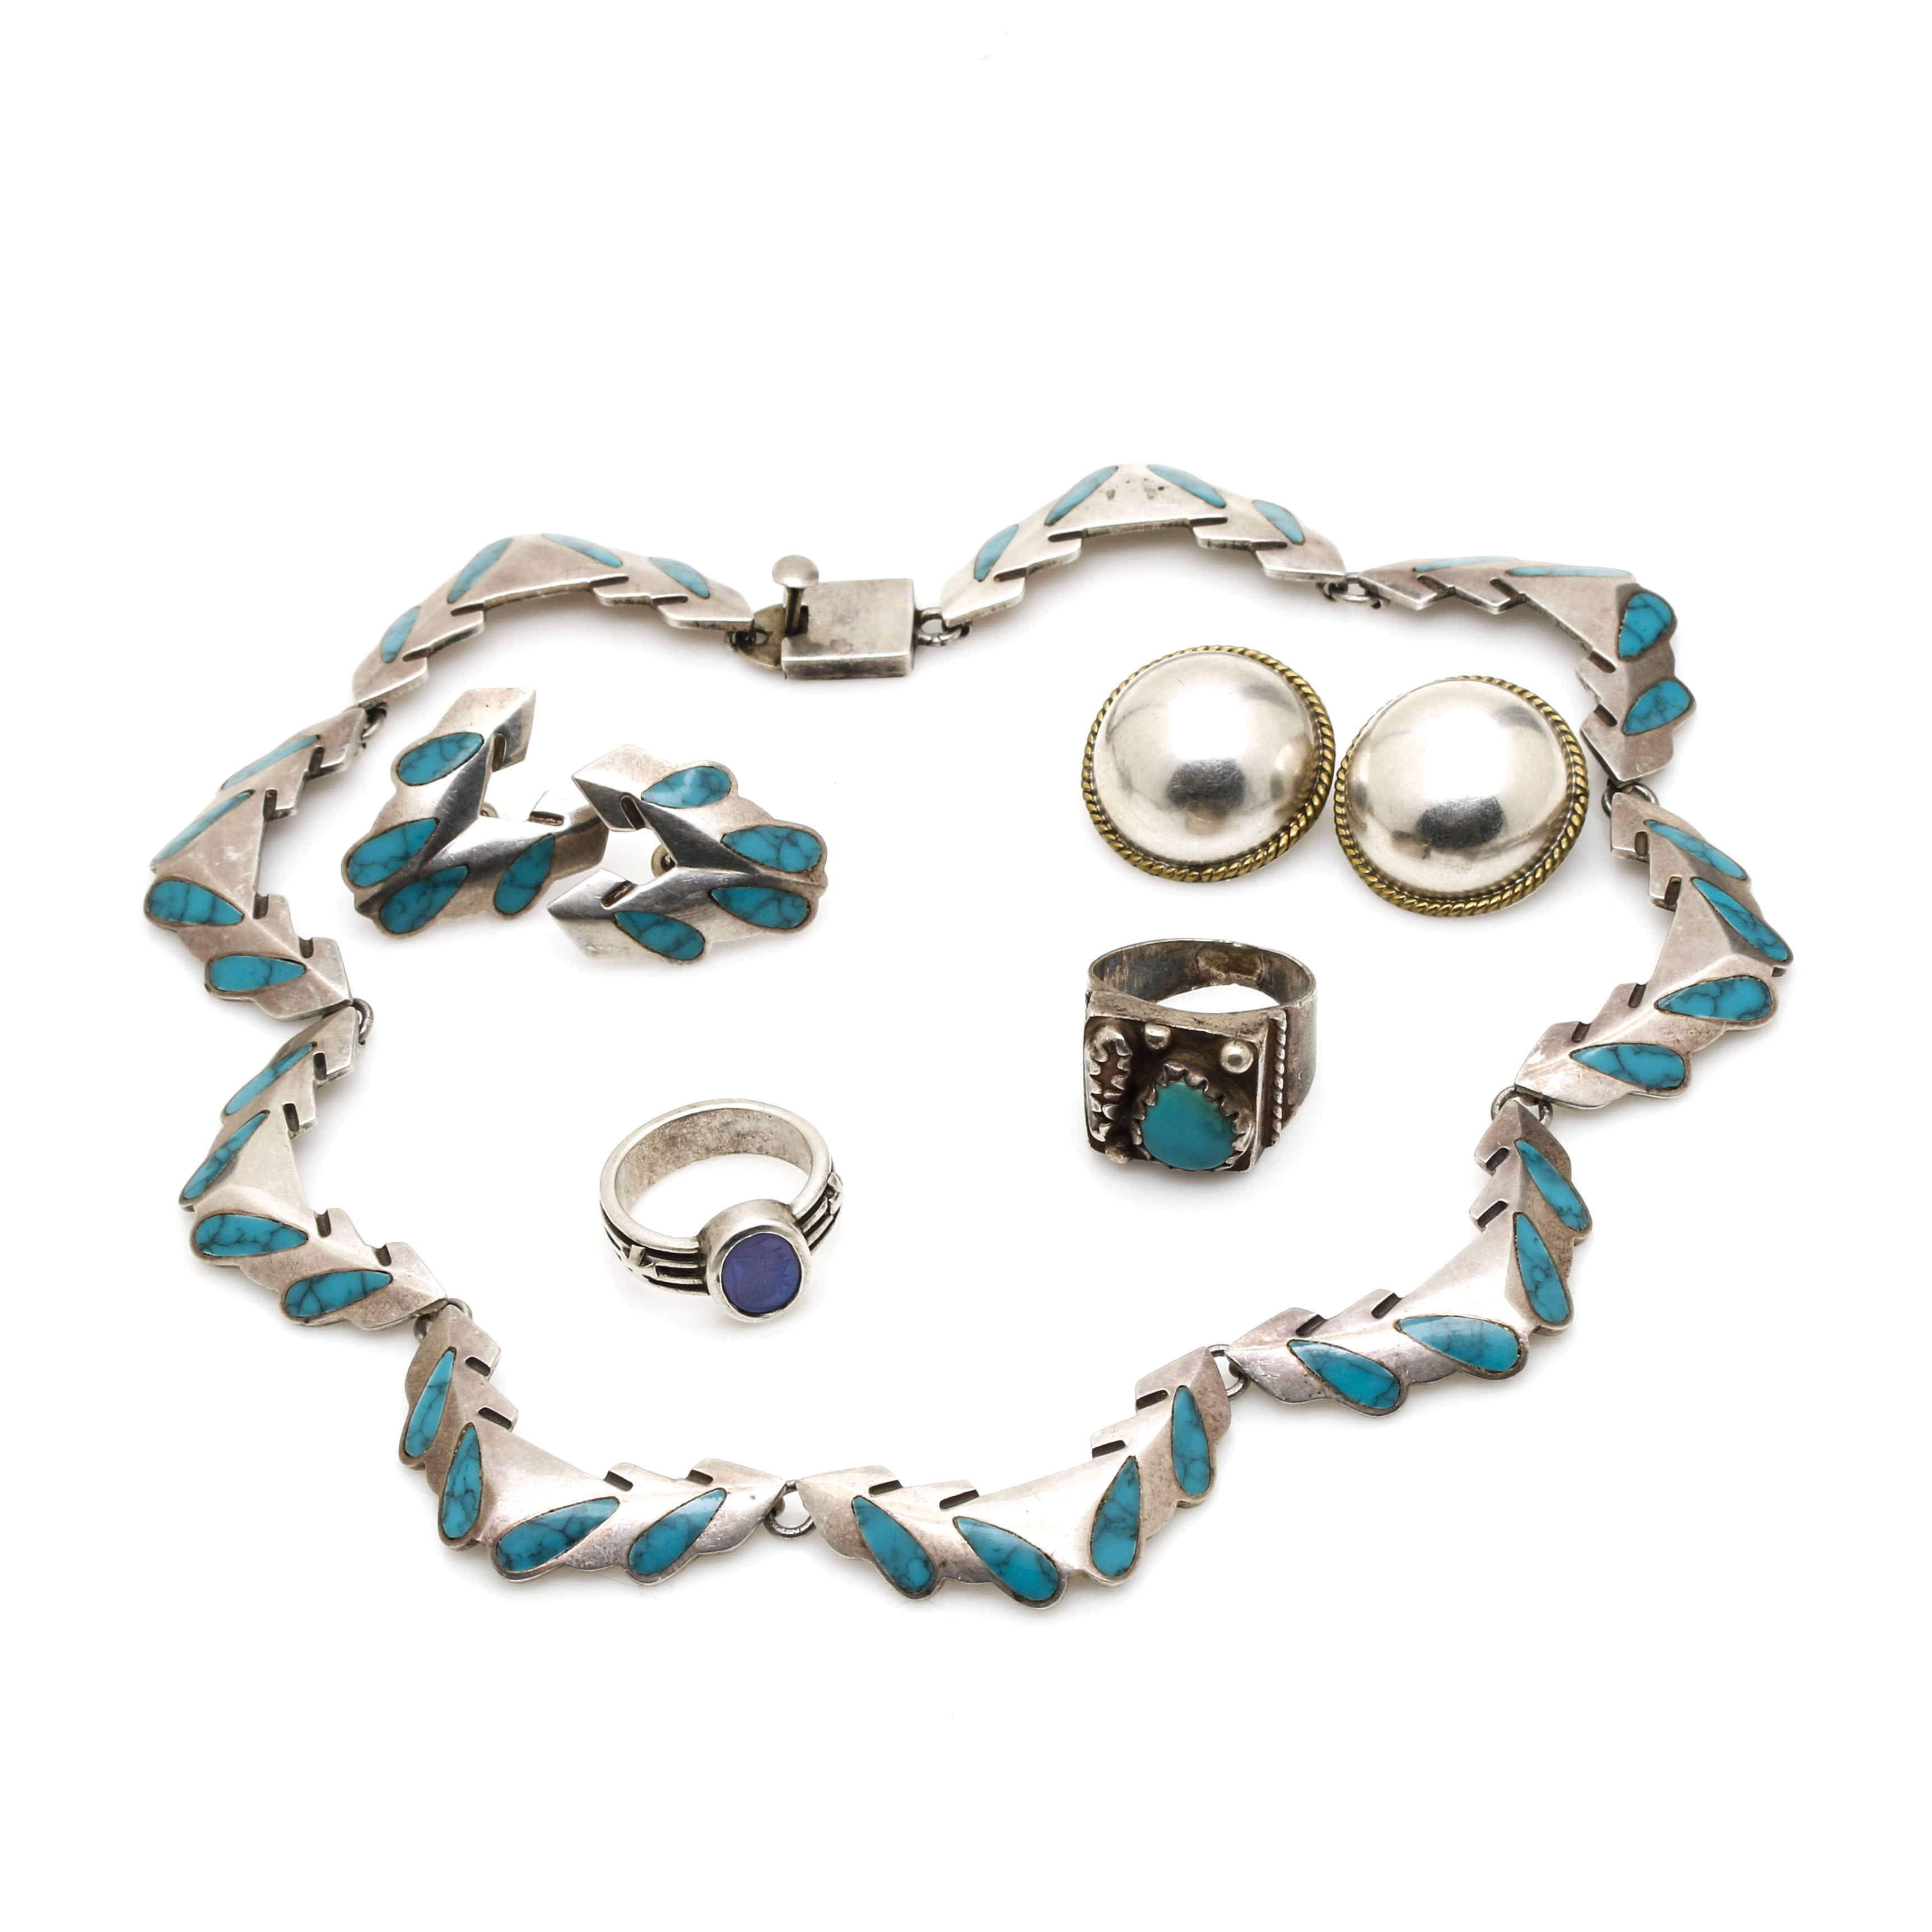 Miguel Garcia Modernist Mexico Sterling Demi Parure and Additional Jewelry